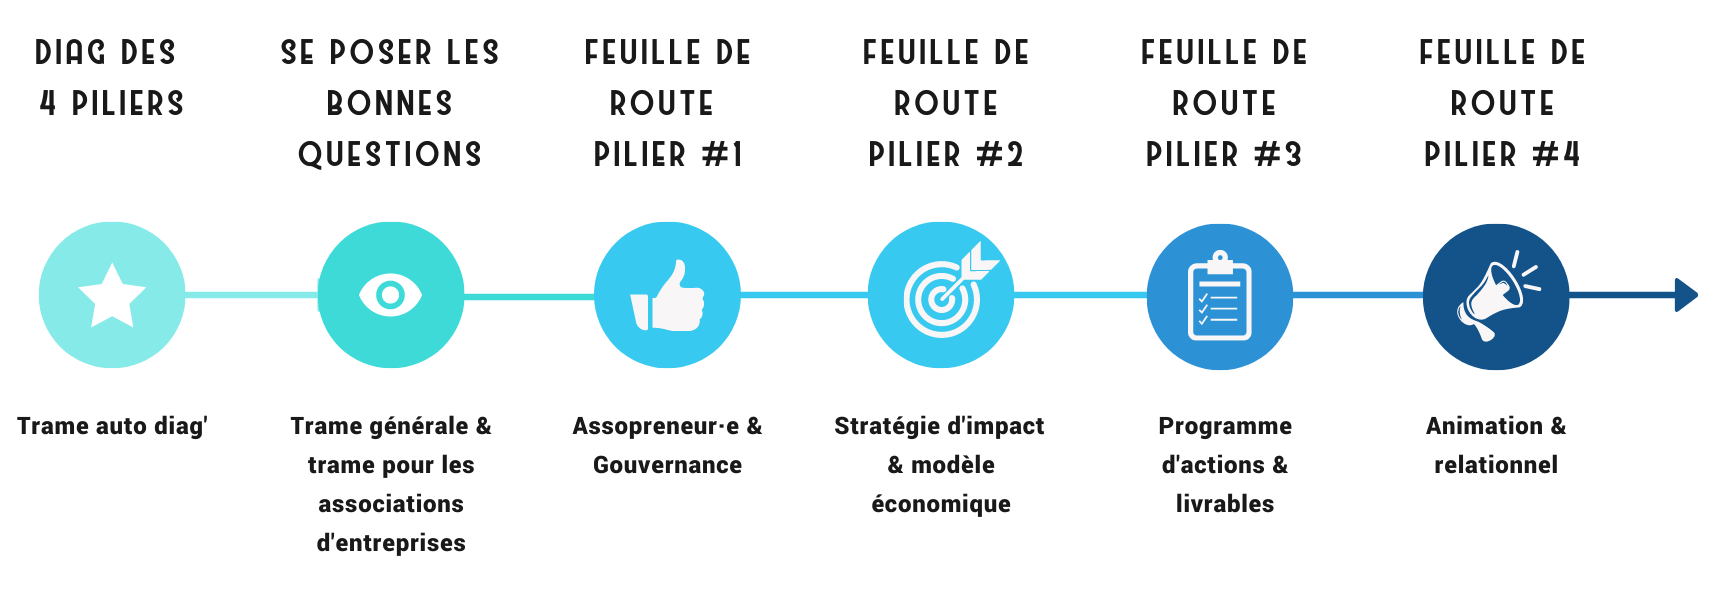 Road map méthode 4 piliers - Copie Assopreneur